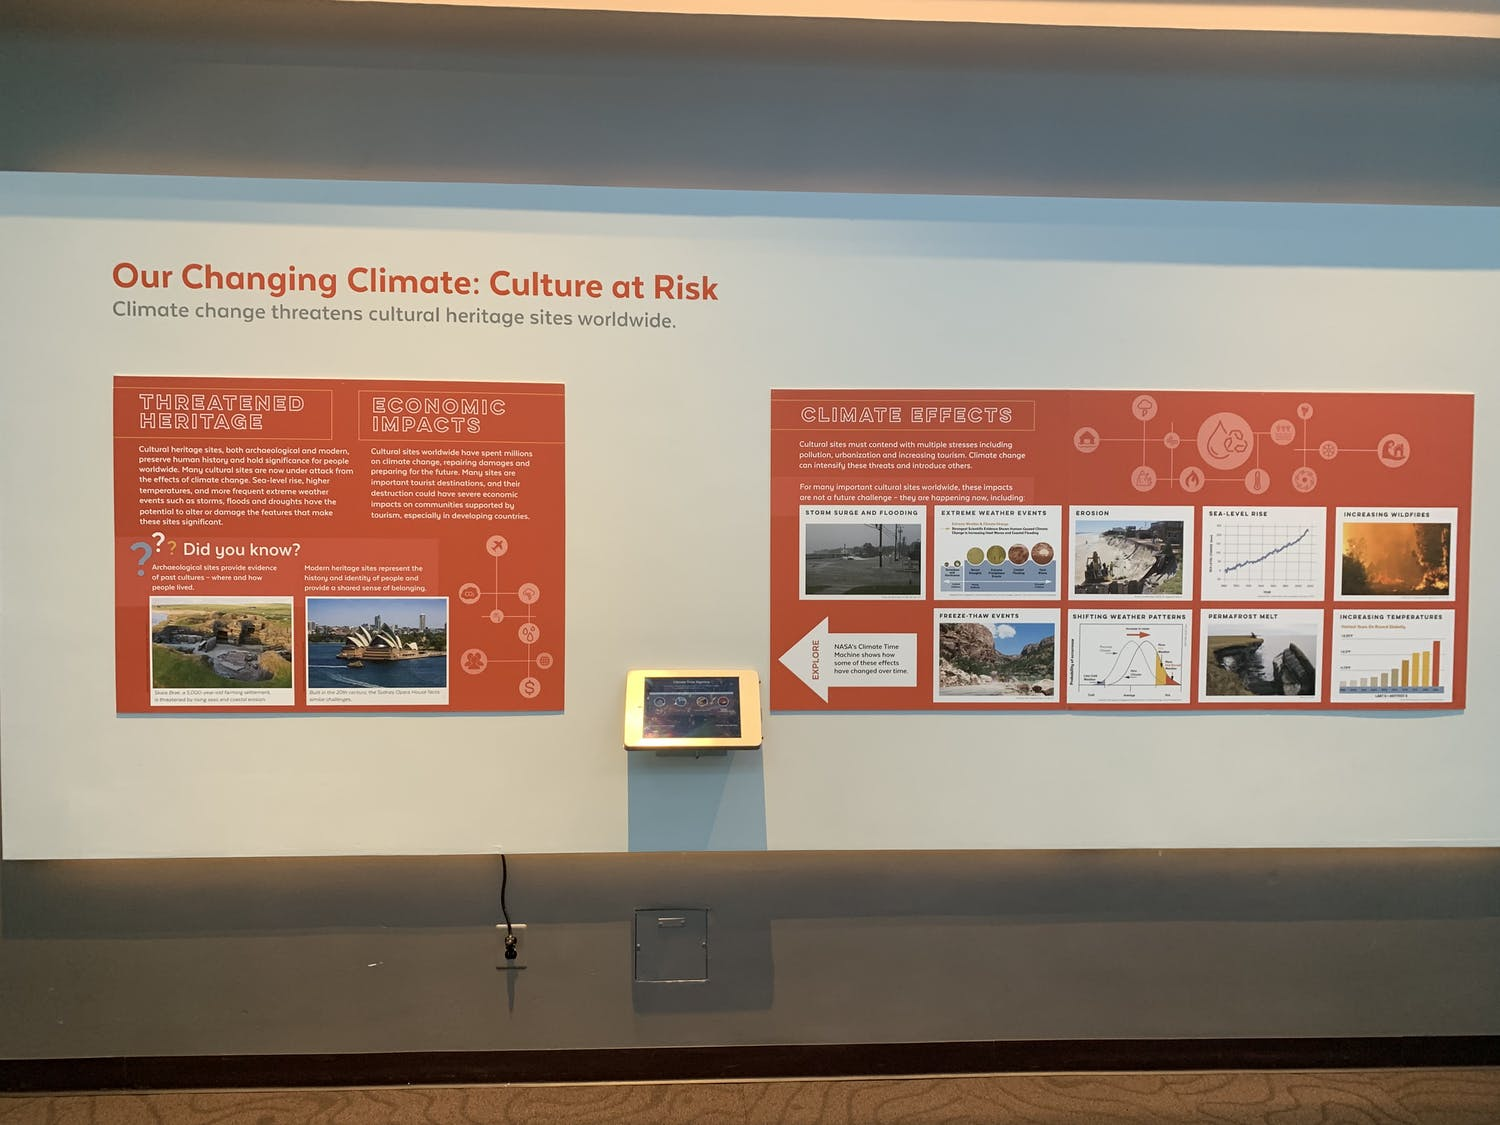 The exhibit explores how many cultural sites have spent millions of dollars attempting to repair the damage done by erosion.